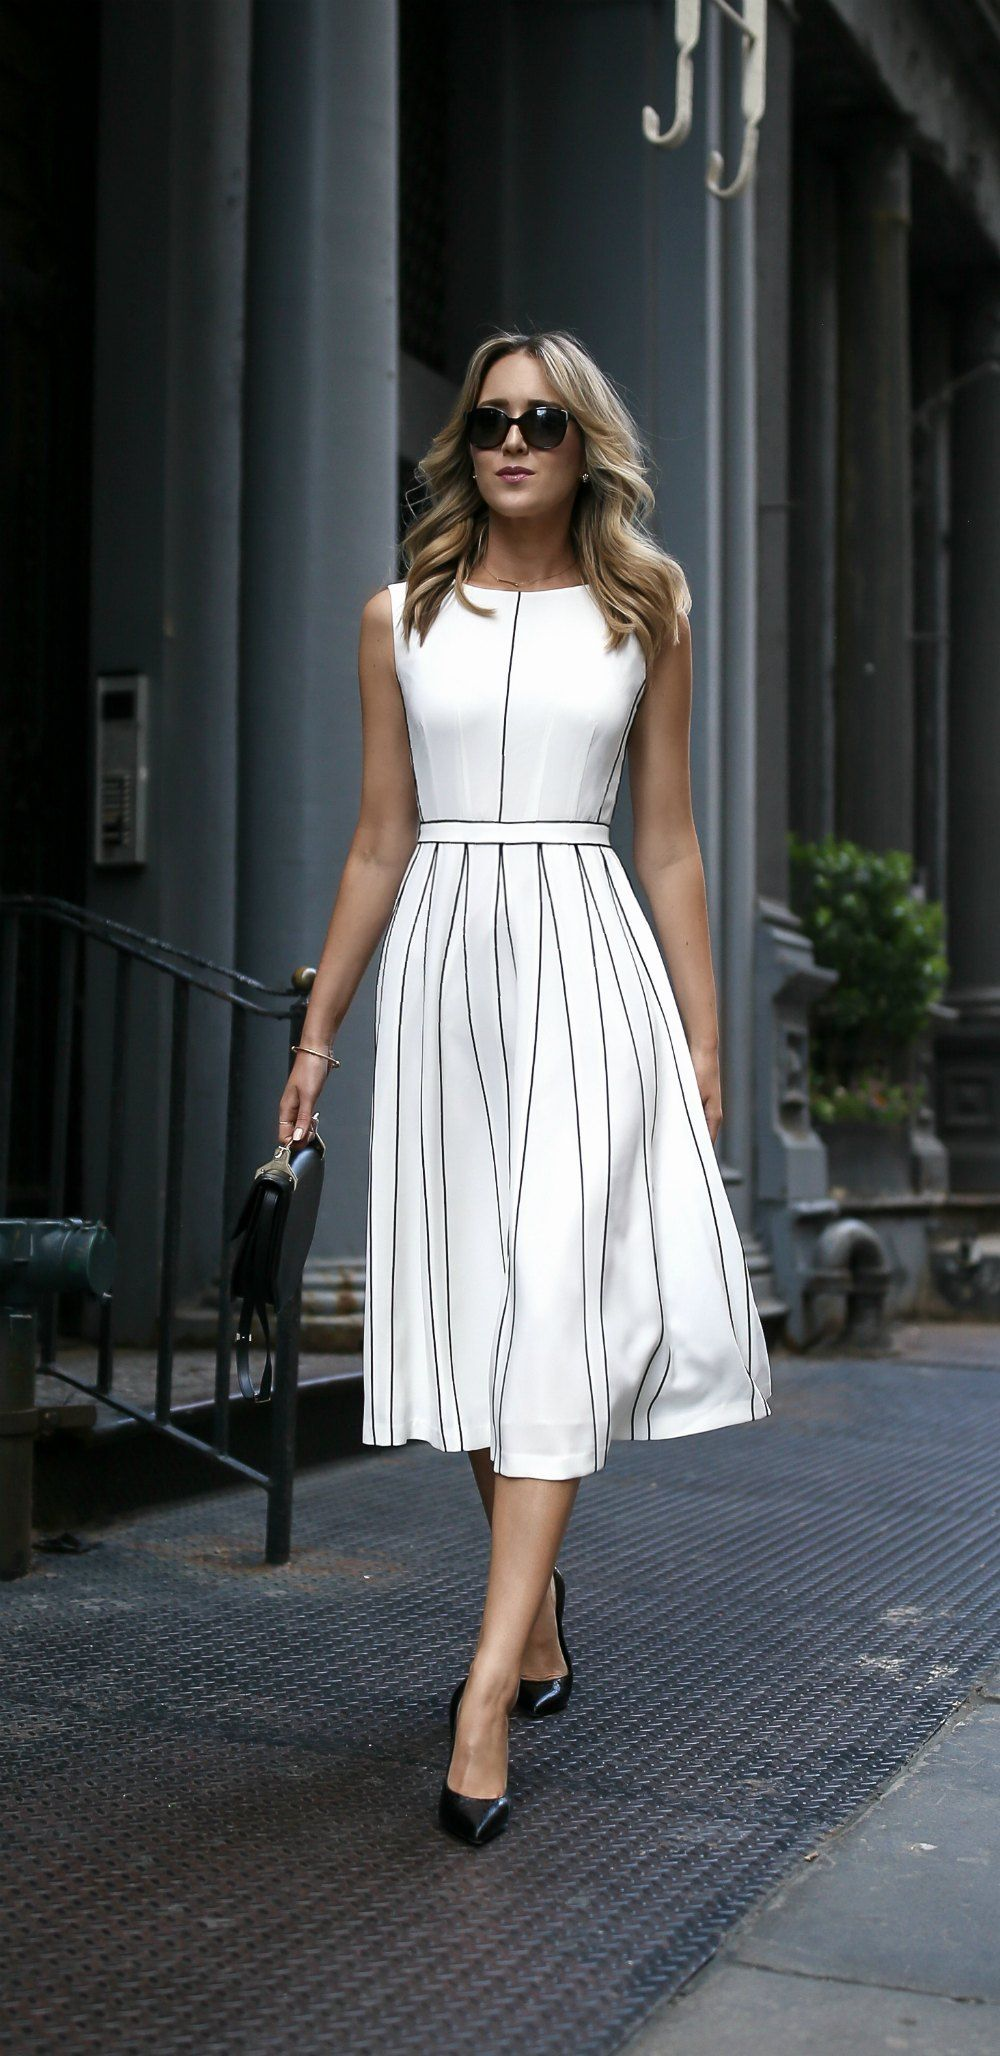 3f1b8f04f317 white pleated sleeveless a-line midi dress with black piping illusion  pleats    classic summer style    perfect for the office or any special  event!